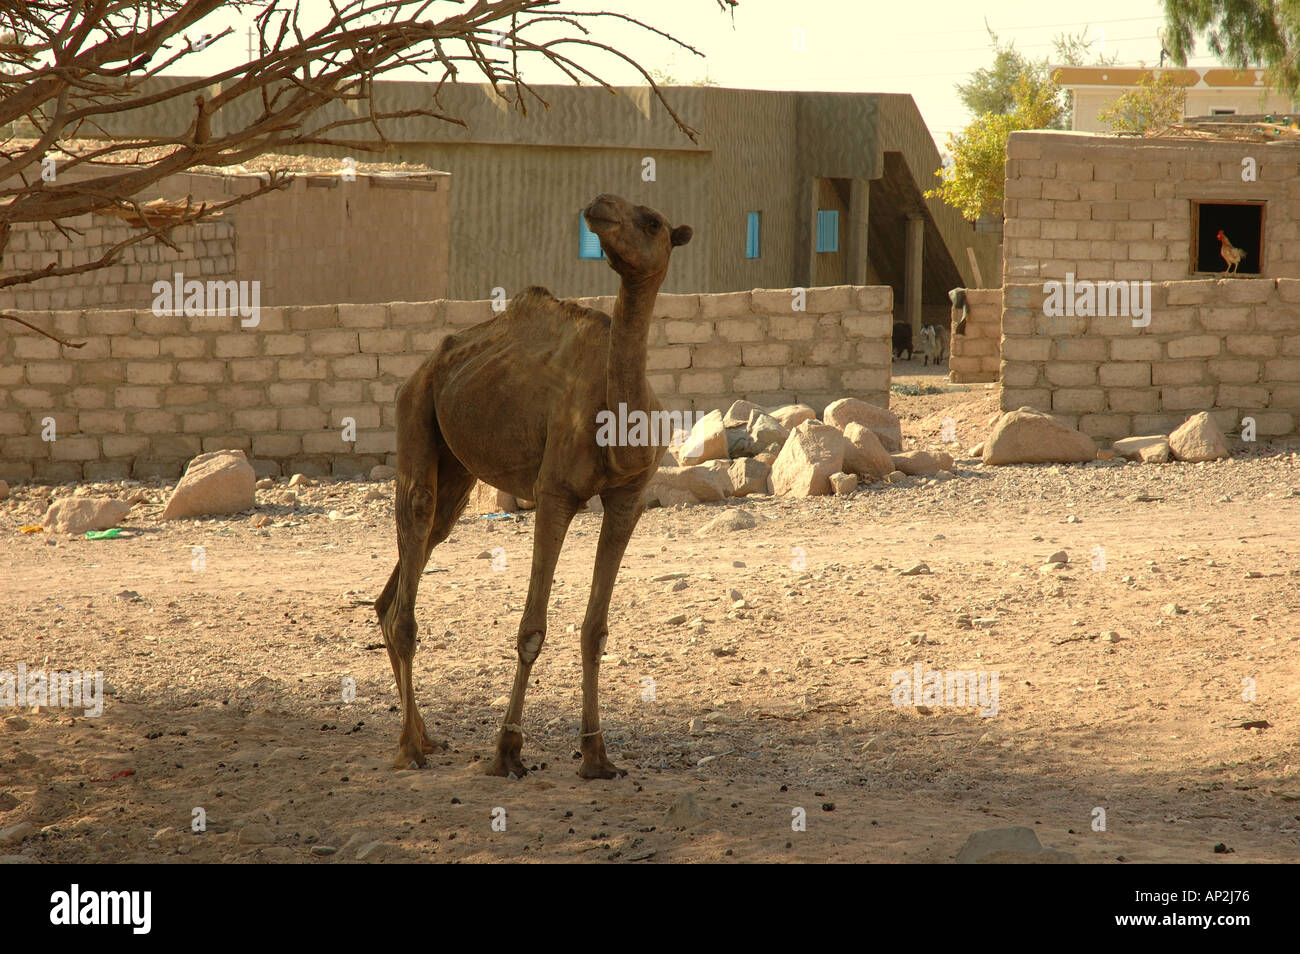 A hobbled malnourished camel trys to reach the leaves of a tree for food at Tarrabin village near Nuweiba in Egypt - Stock Image